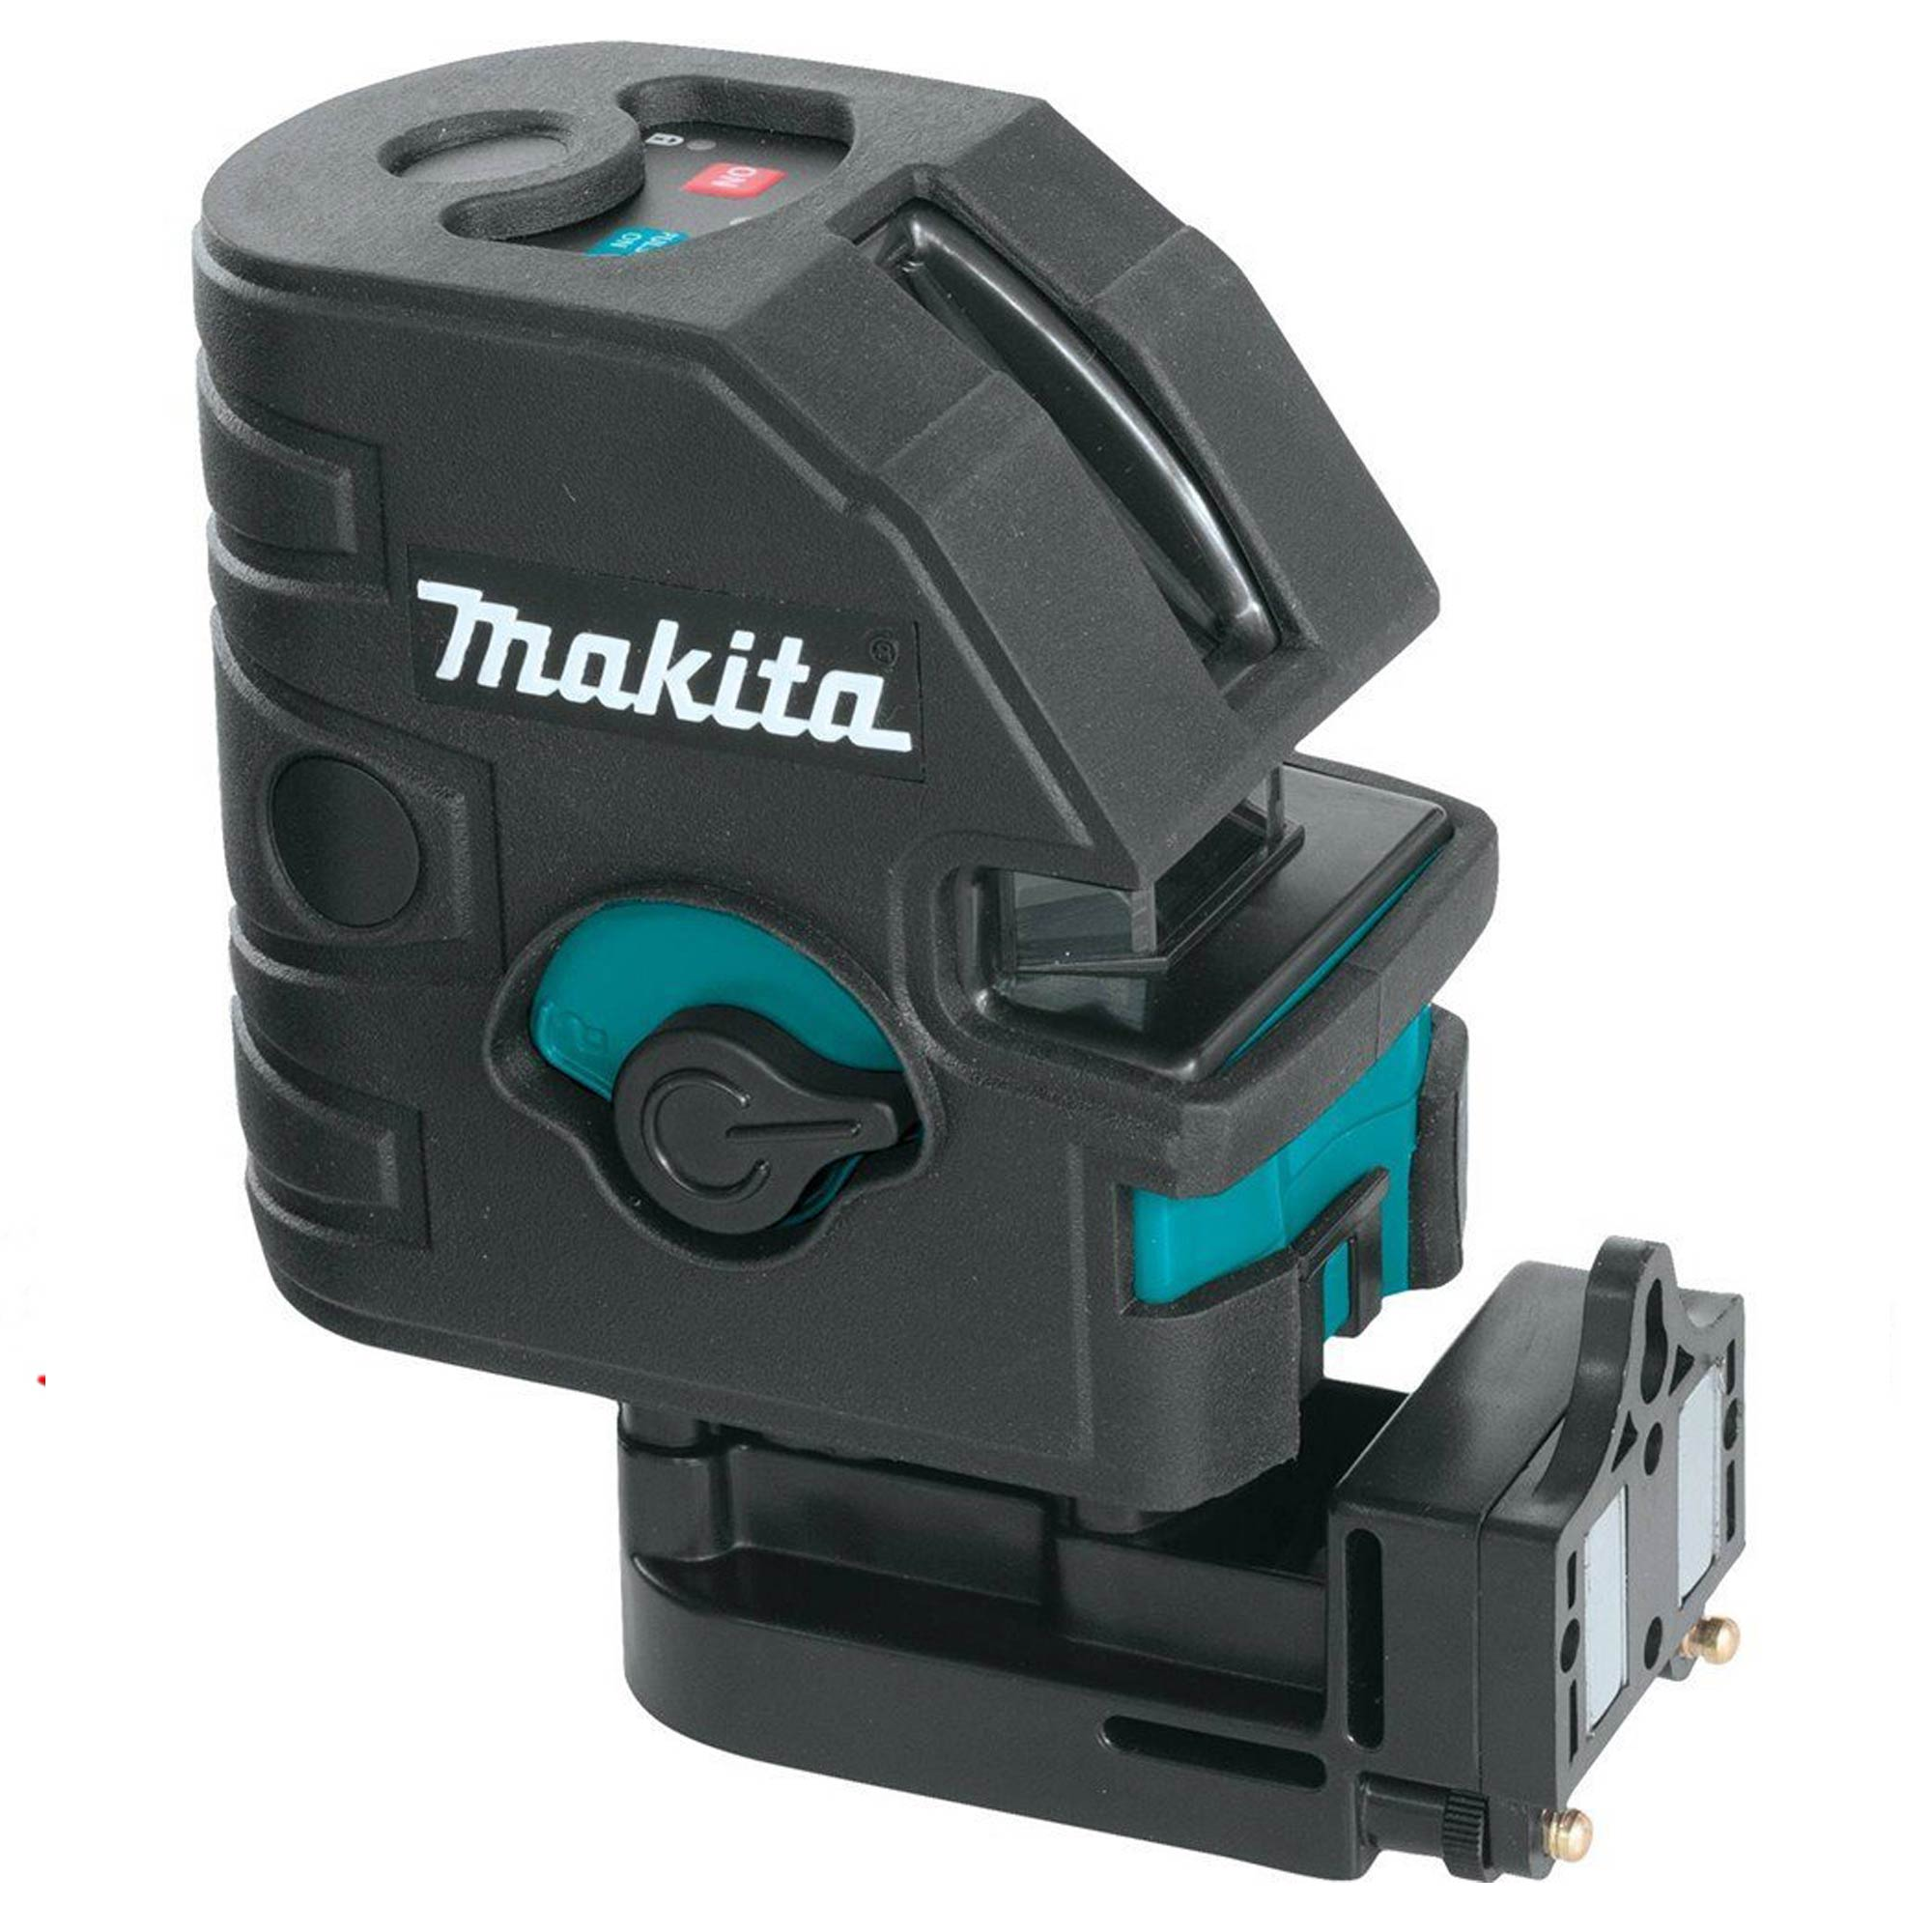 Makita Laser Level Spares and Parts